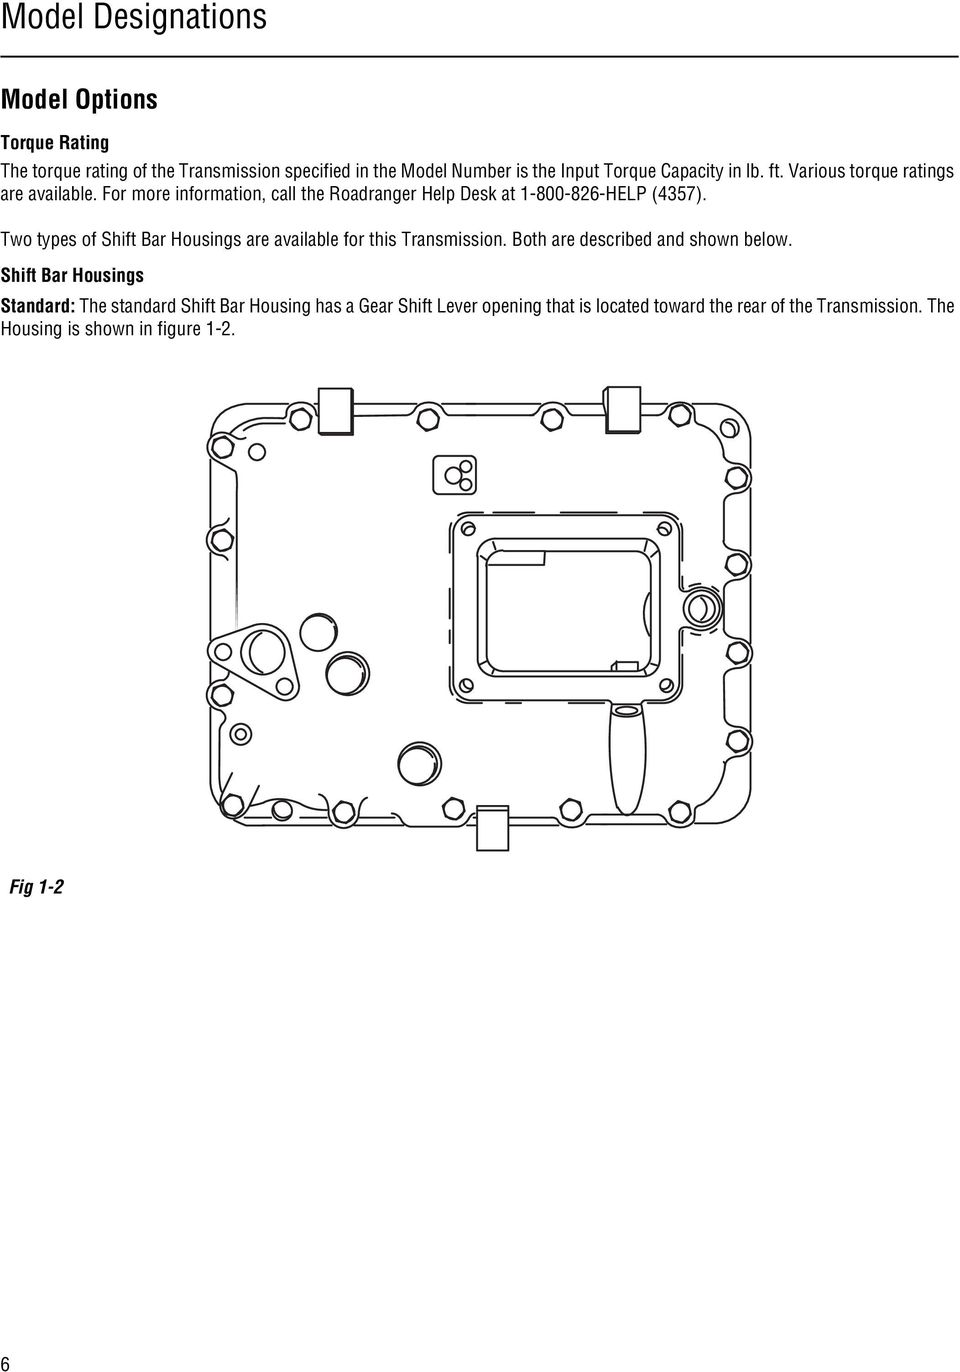 medium resolution of two types of shift bar housings are available for this transmission both are described and